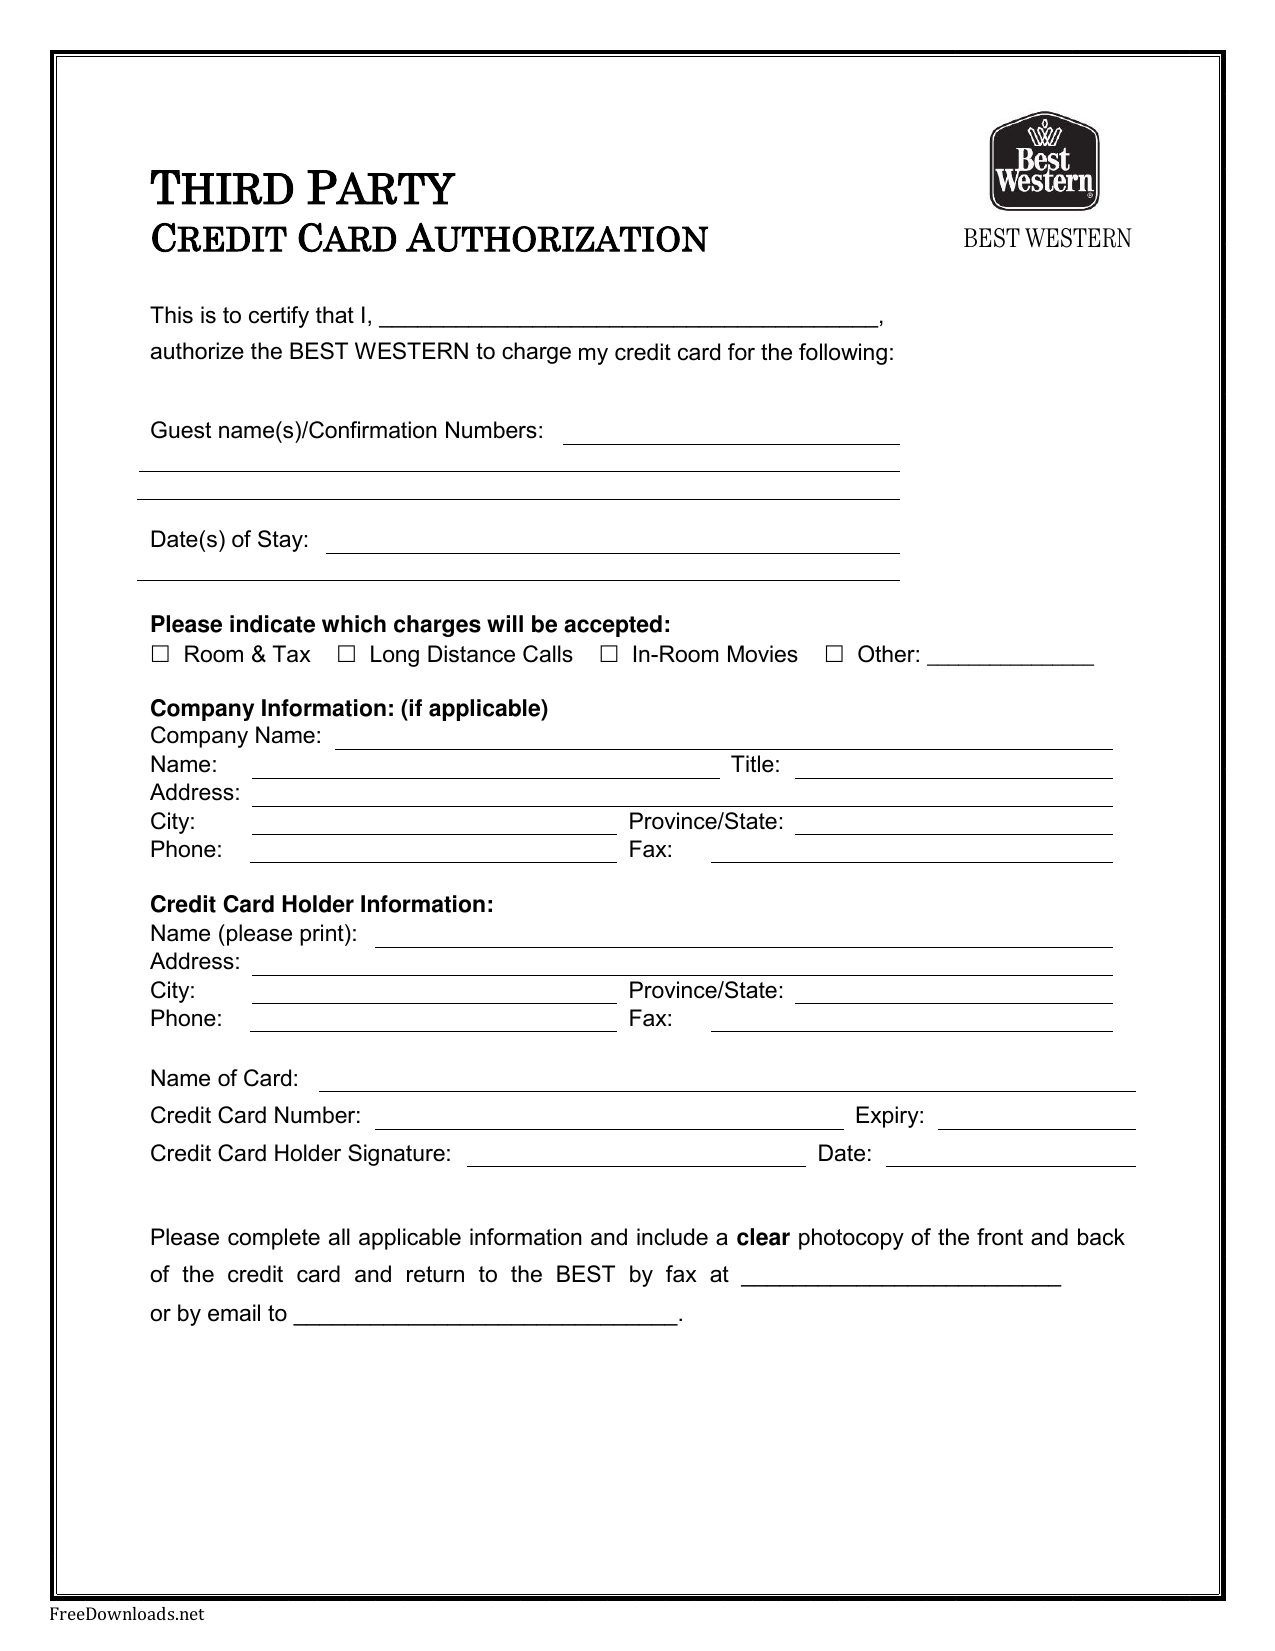 Download Best Western Credit Card Authorization Form Template | PDF ...